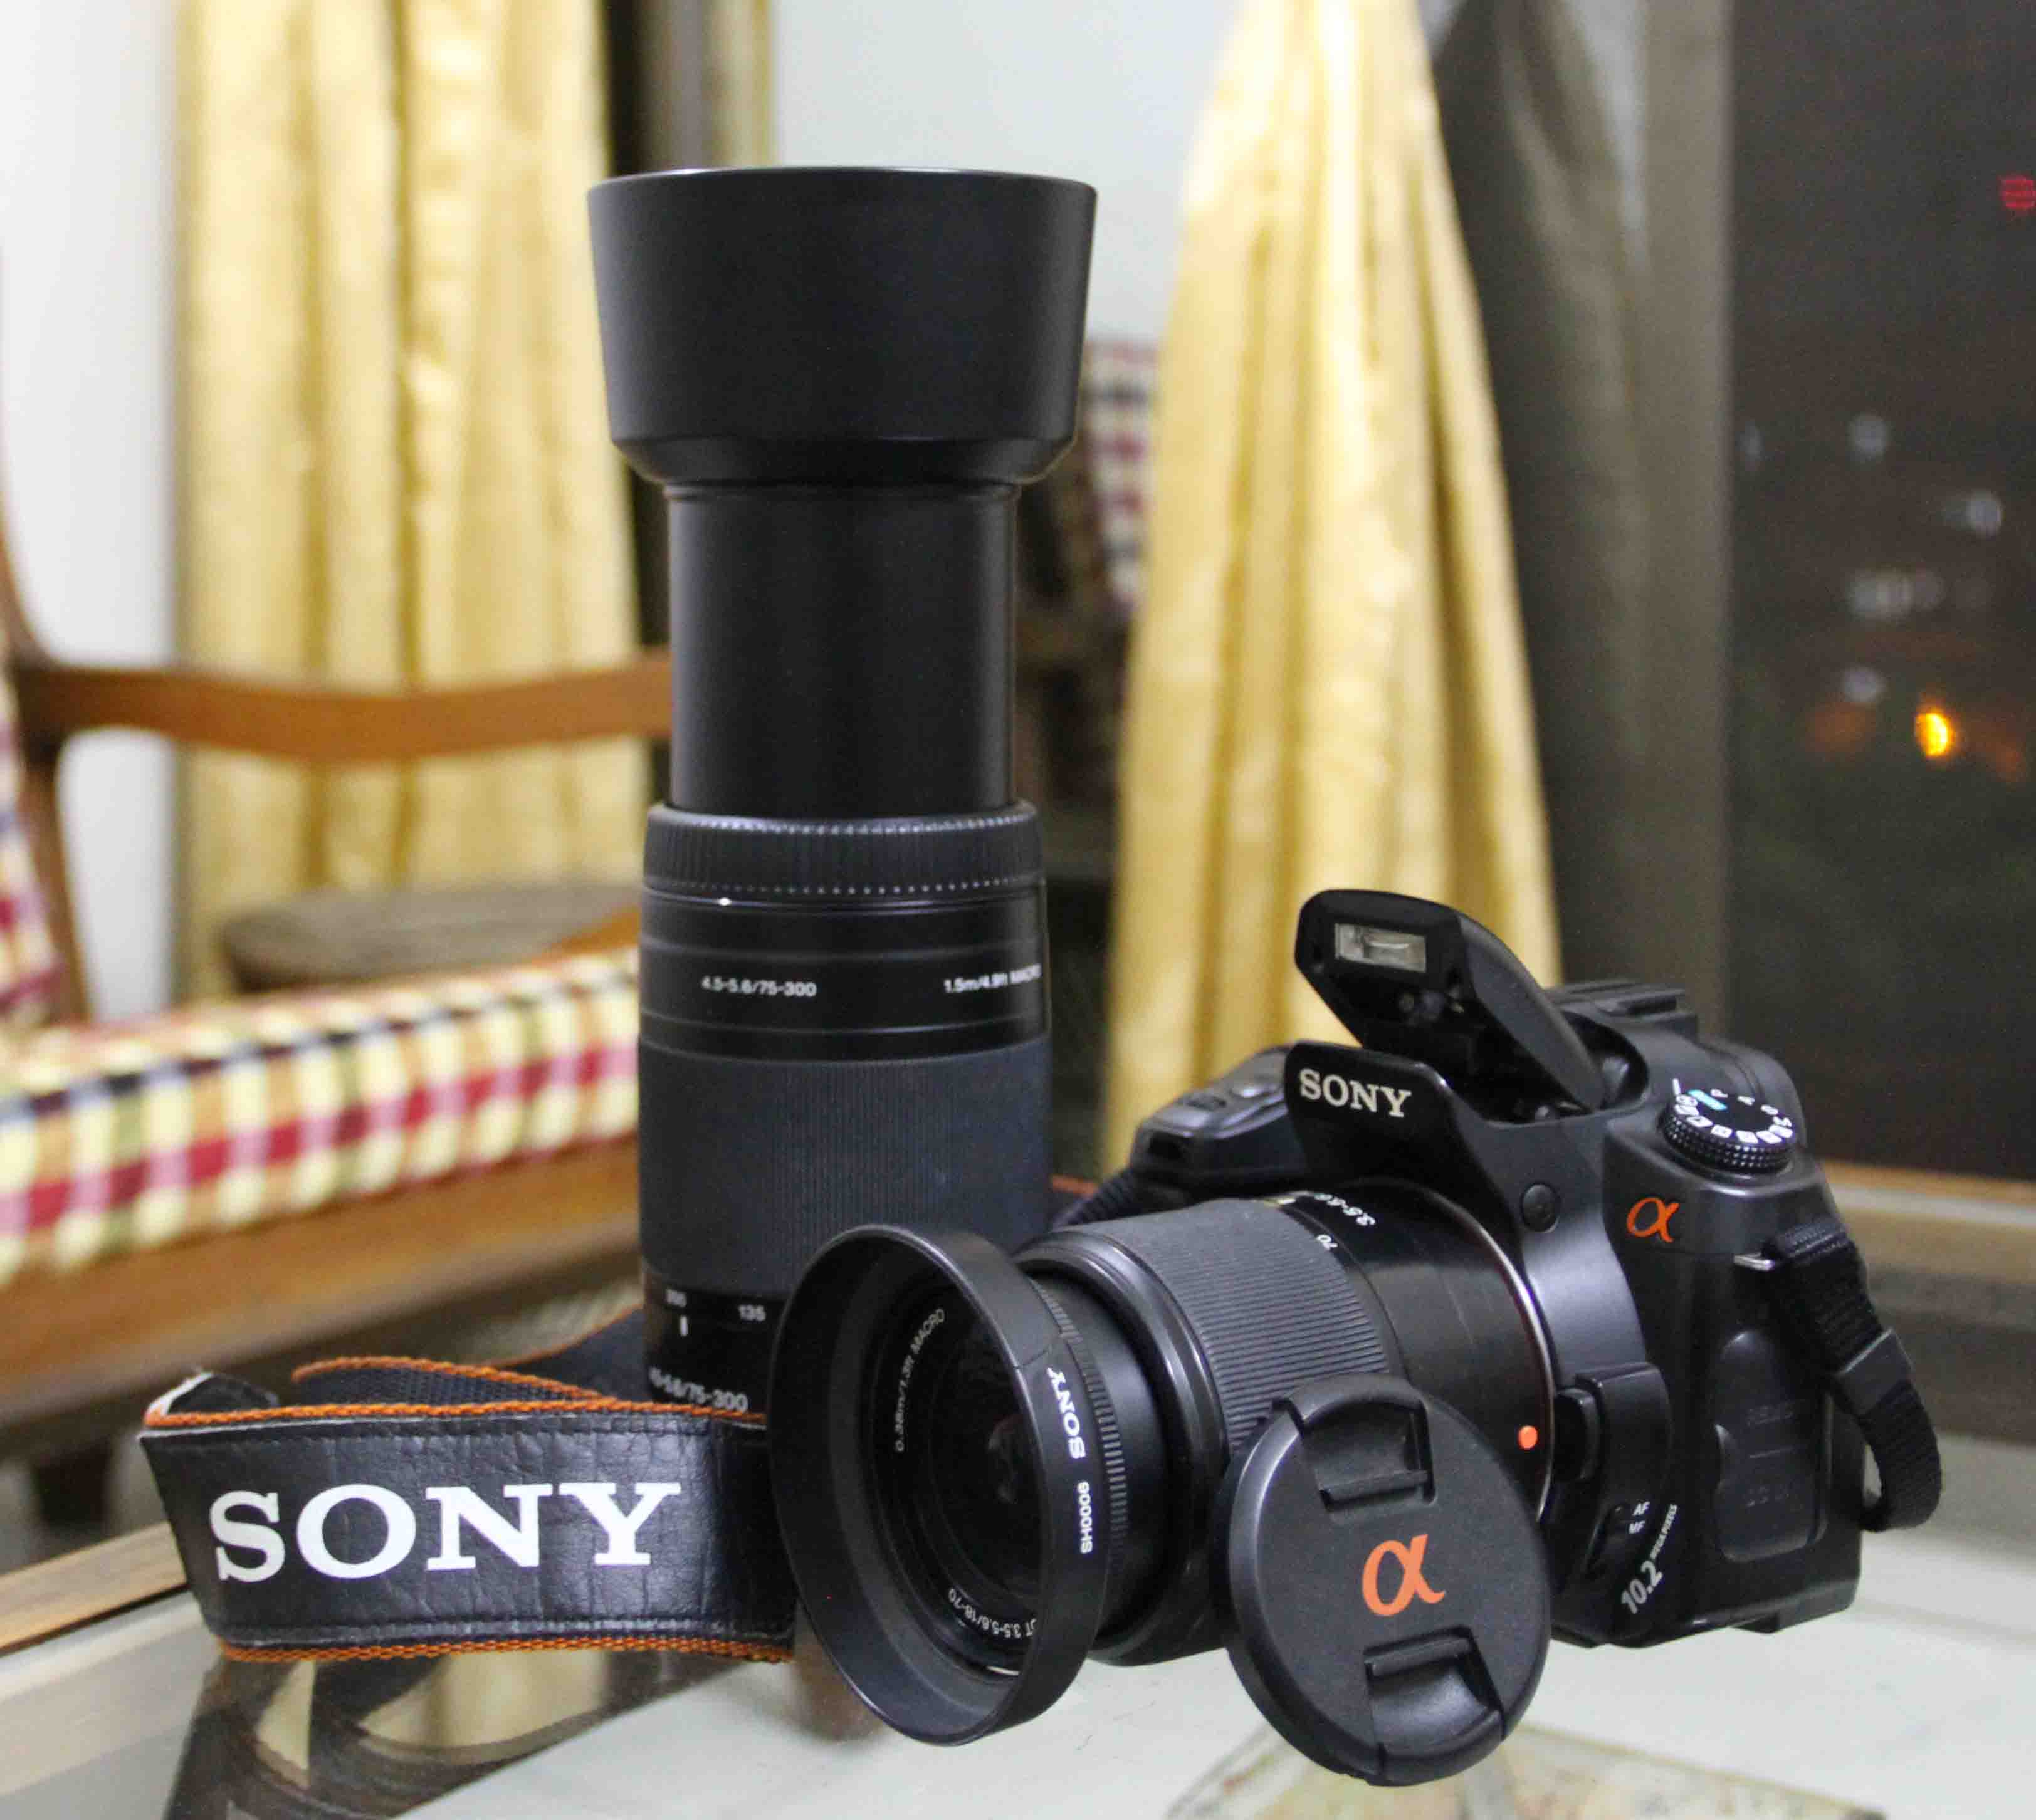 Camera Camera Sony Dslr sony a200 dslr camera with 18 70mm and 75 300mm macro lens clickbd